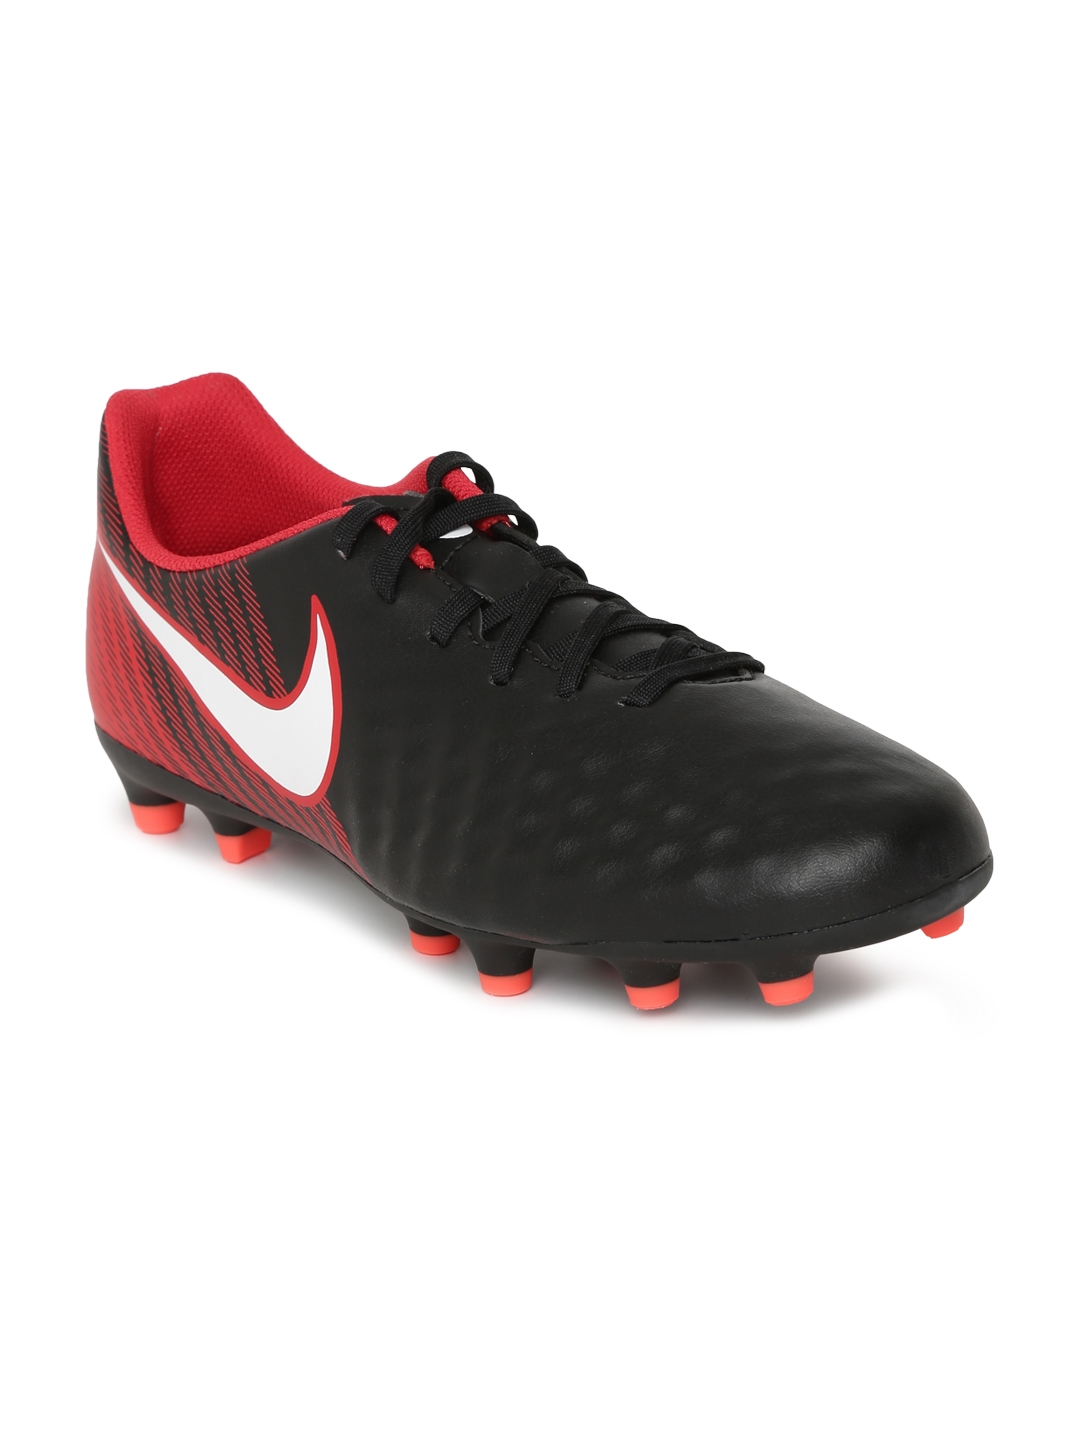 6688fe2561c2 Buy Nike Men MAGISTA OLA II FG Black Leather Football Shoes - Sports ...